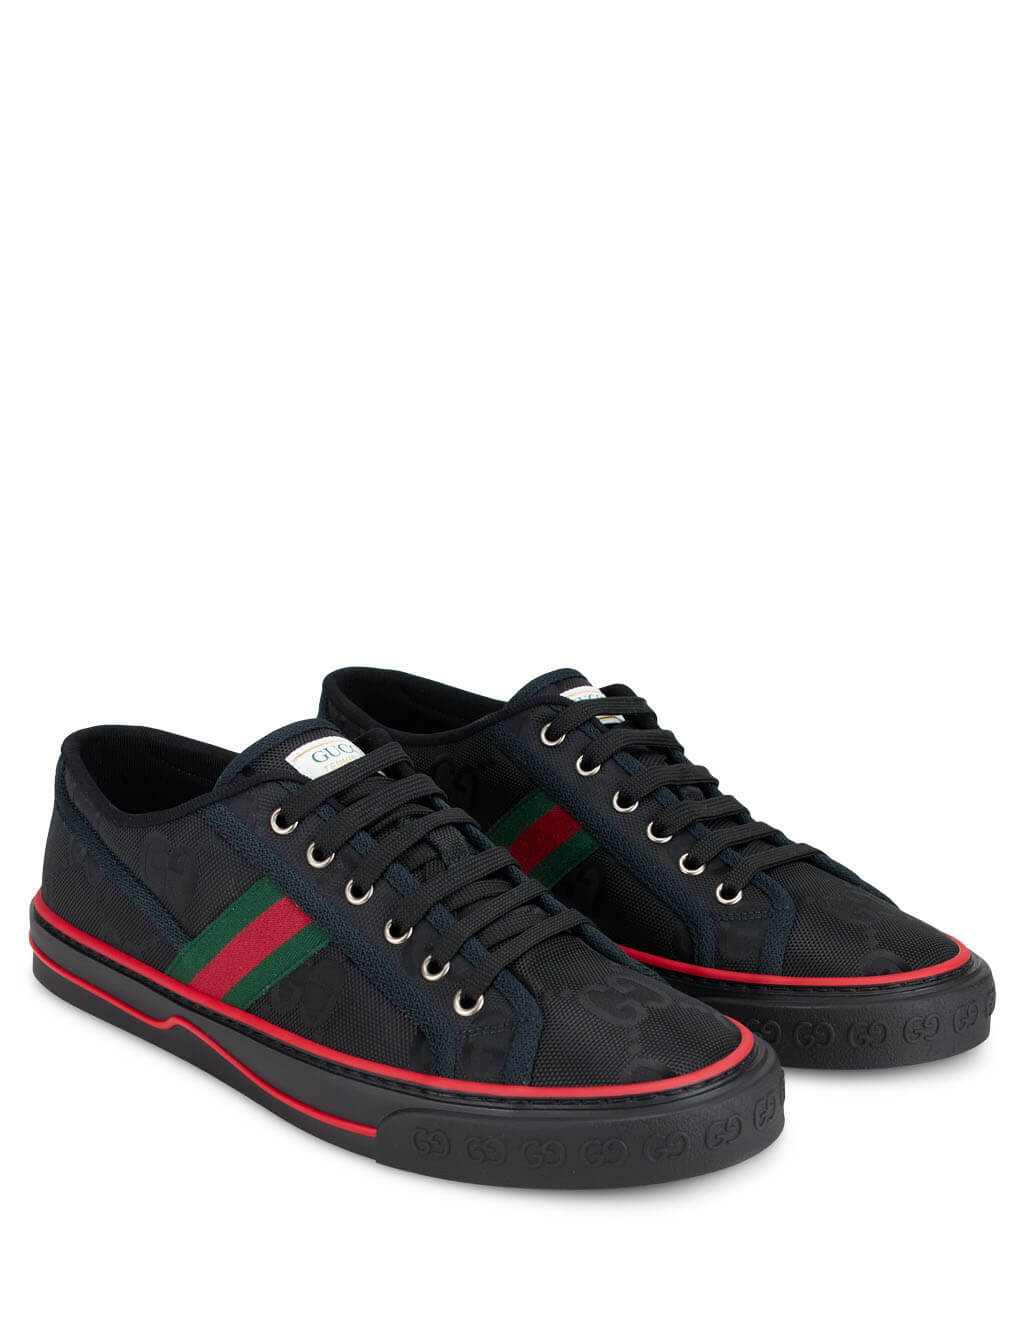 Gucci Men's Black Off The Grid Sneakers 628709 H9H70 1072